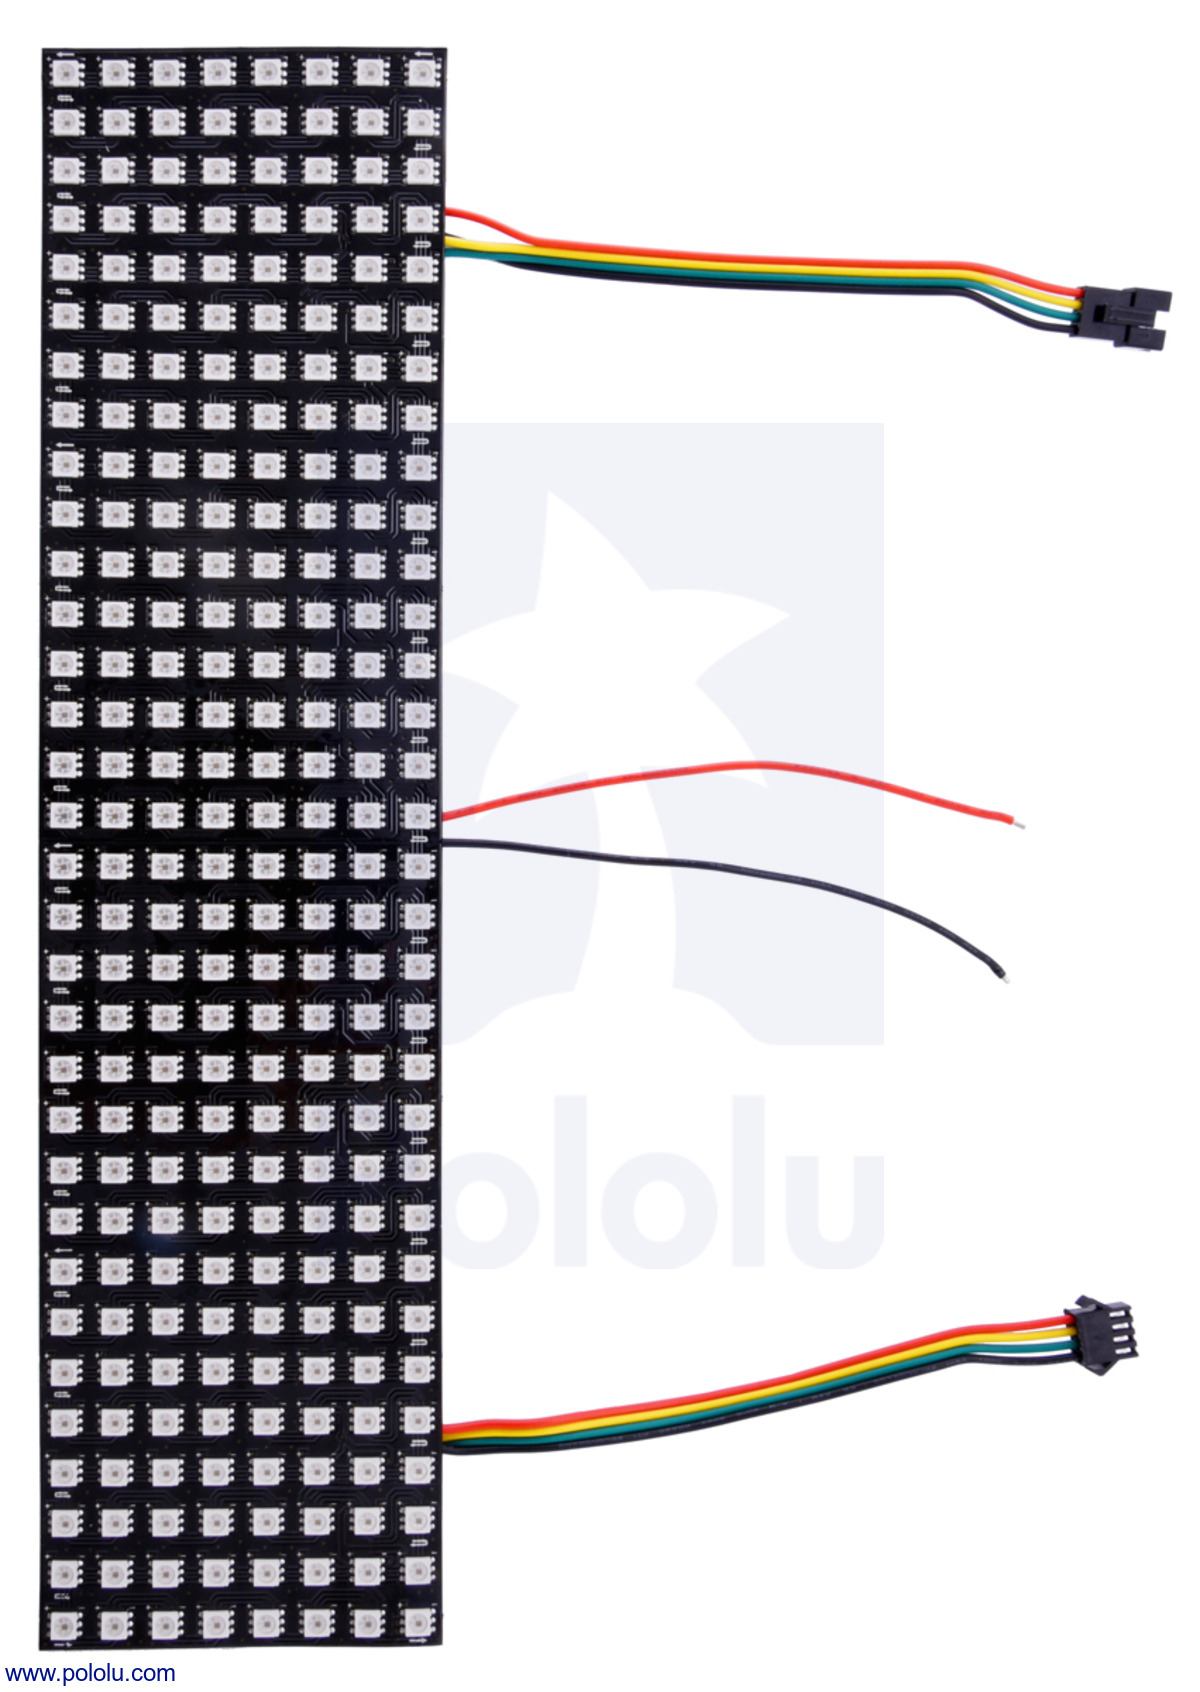 Pololu addressable rgb 8x32 led flexible panel 5v 10mm grid the current draw under 55 a which should generally keep the temperature of the leds below their 70c maximum rating see the recommendations in the greentooth Images